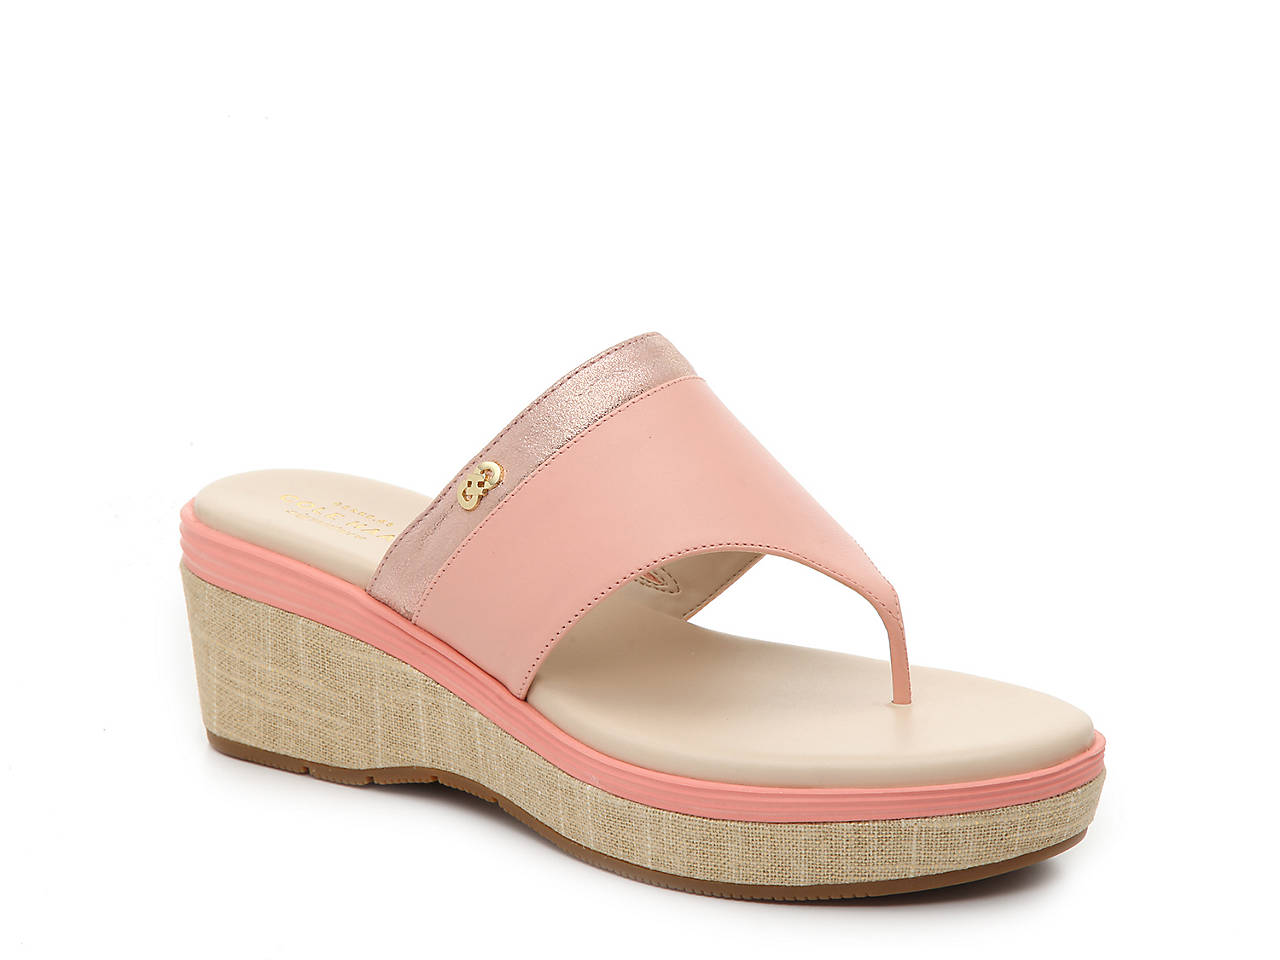 5f31149e749 Cole Haan Cecily Grand Wedge Sandal Women s Shoes